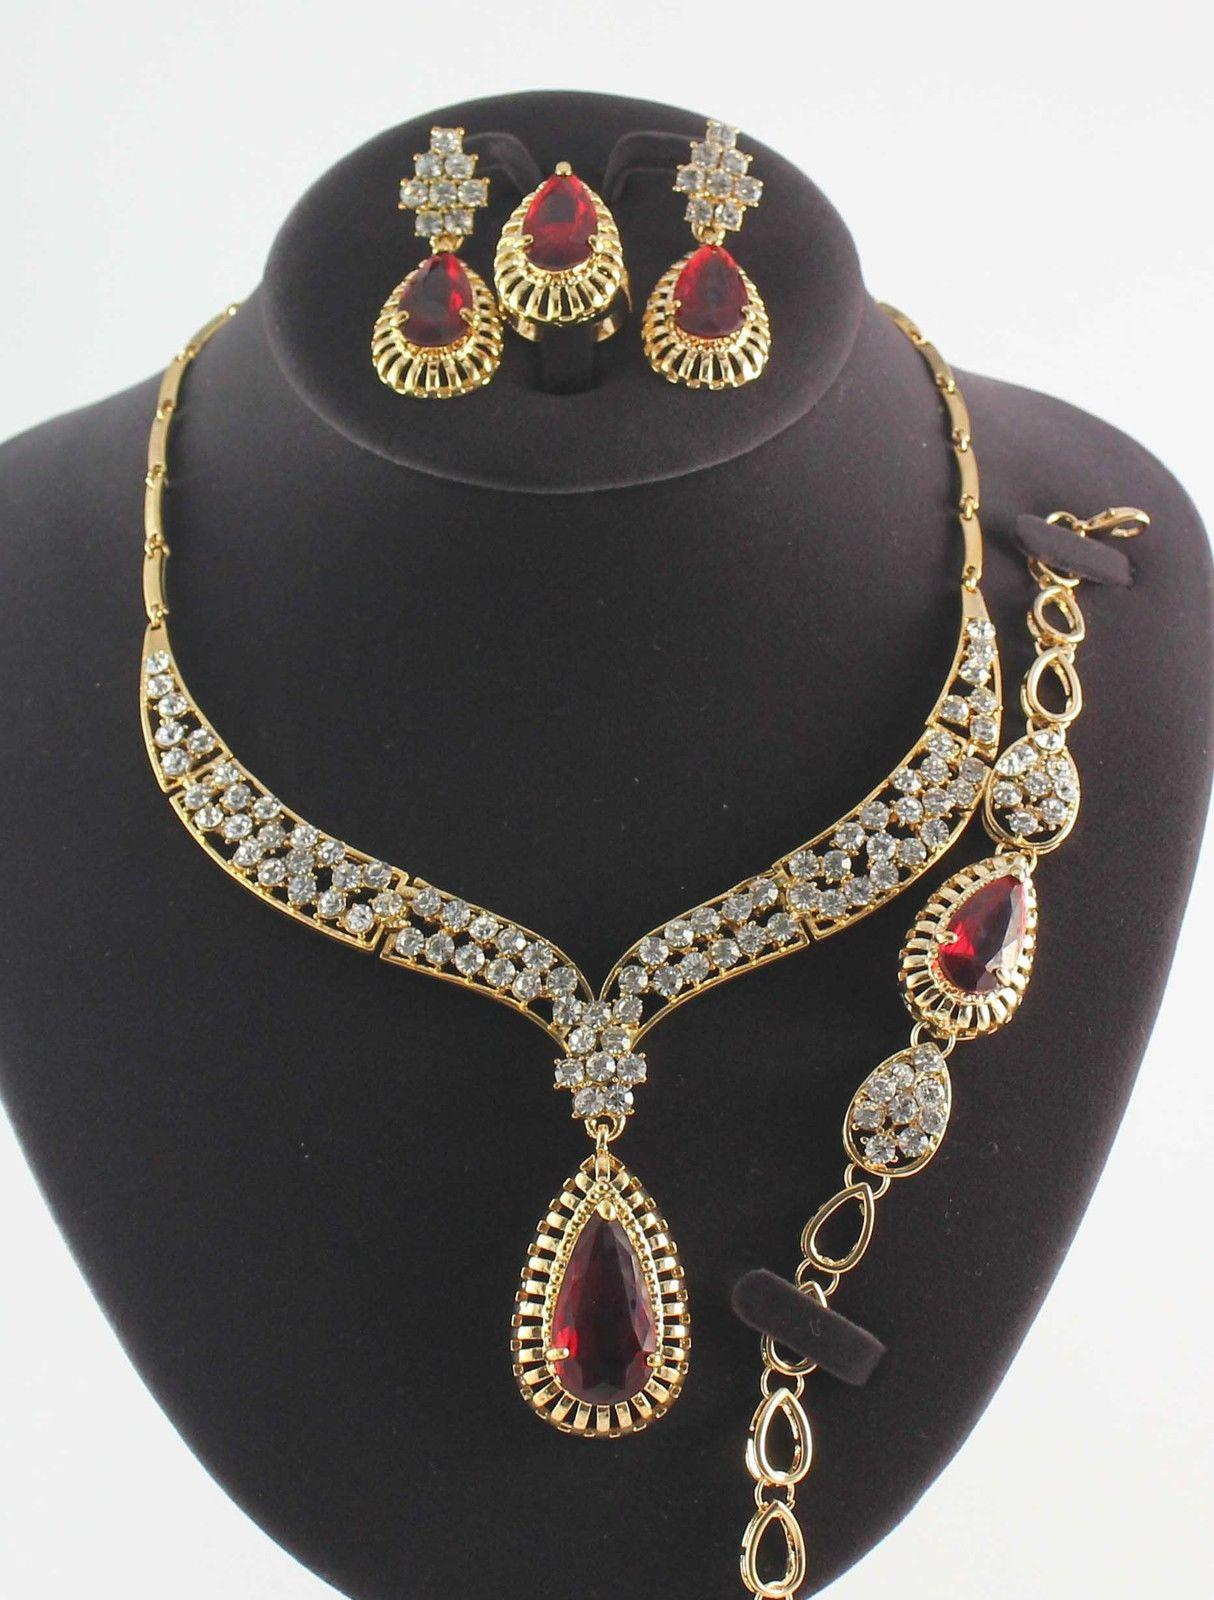 jewellery style beaded fashion stunning dreamjwell the jewelry traditional atti haar imitation necklace set of indian gold best nckn long kerala plated